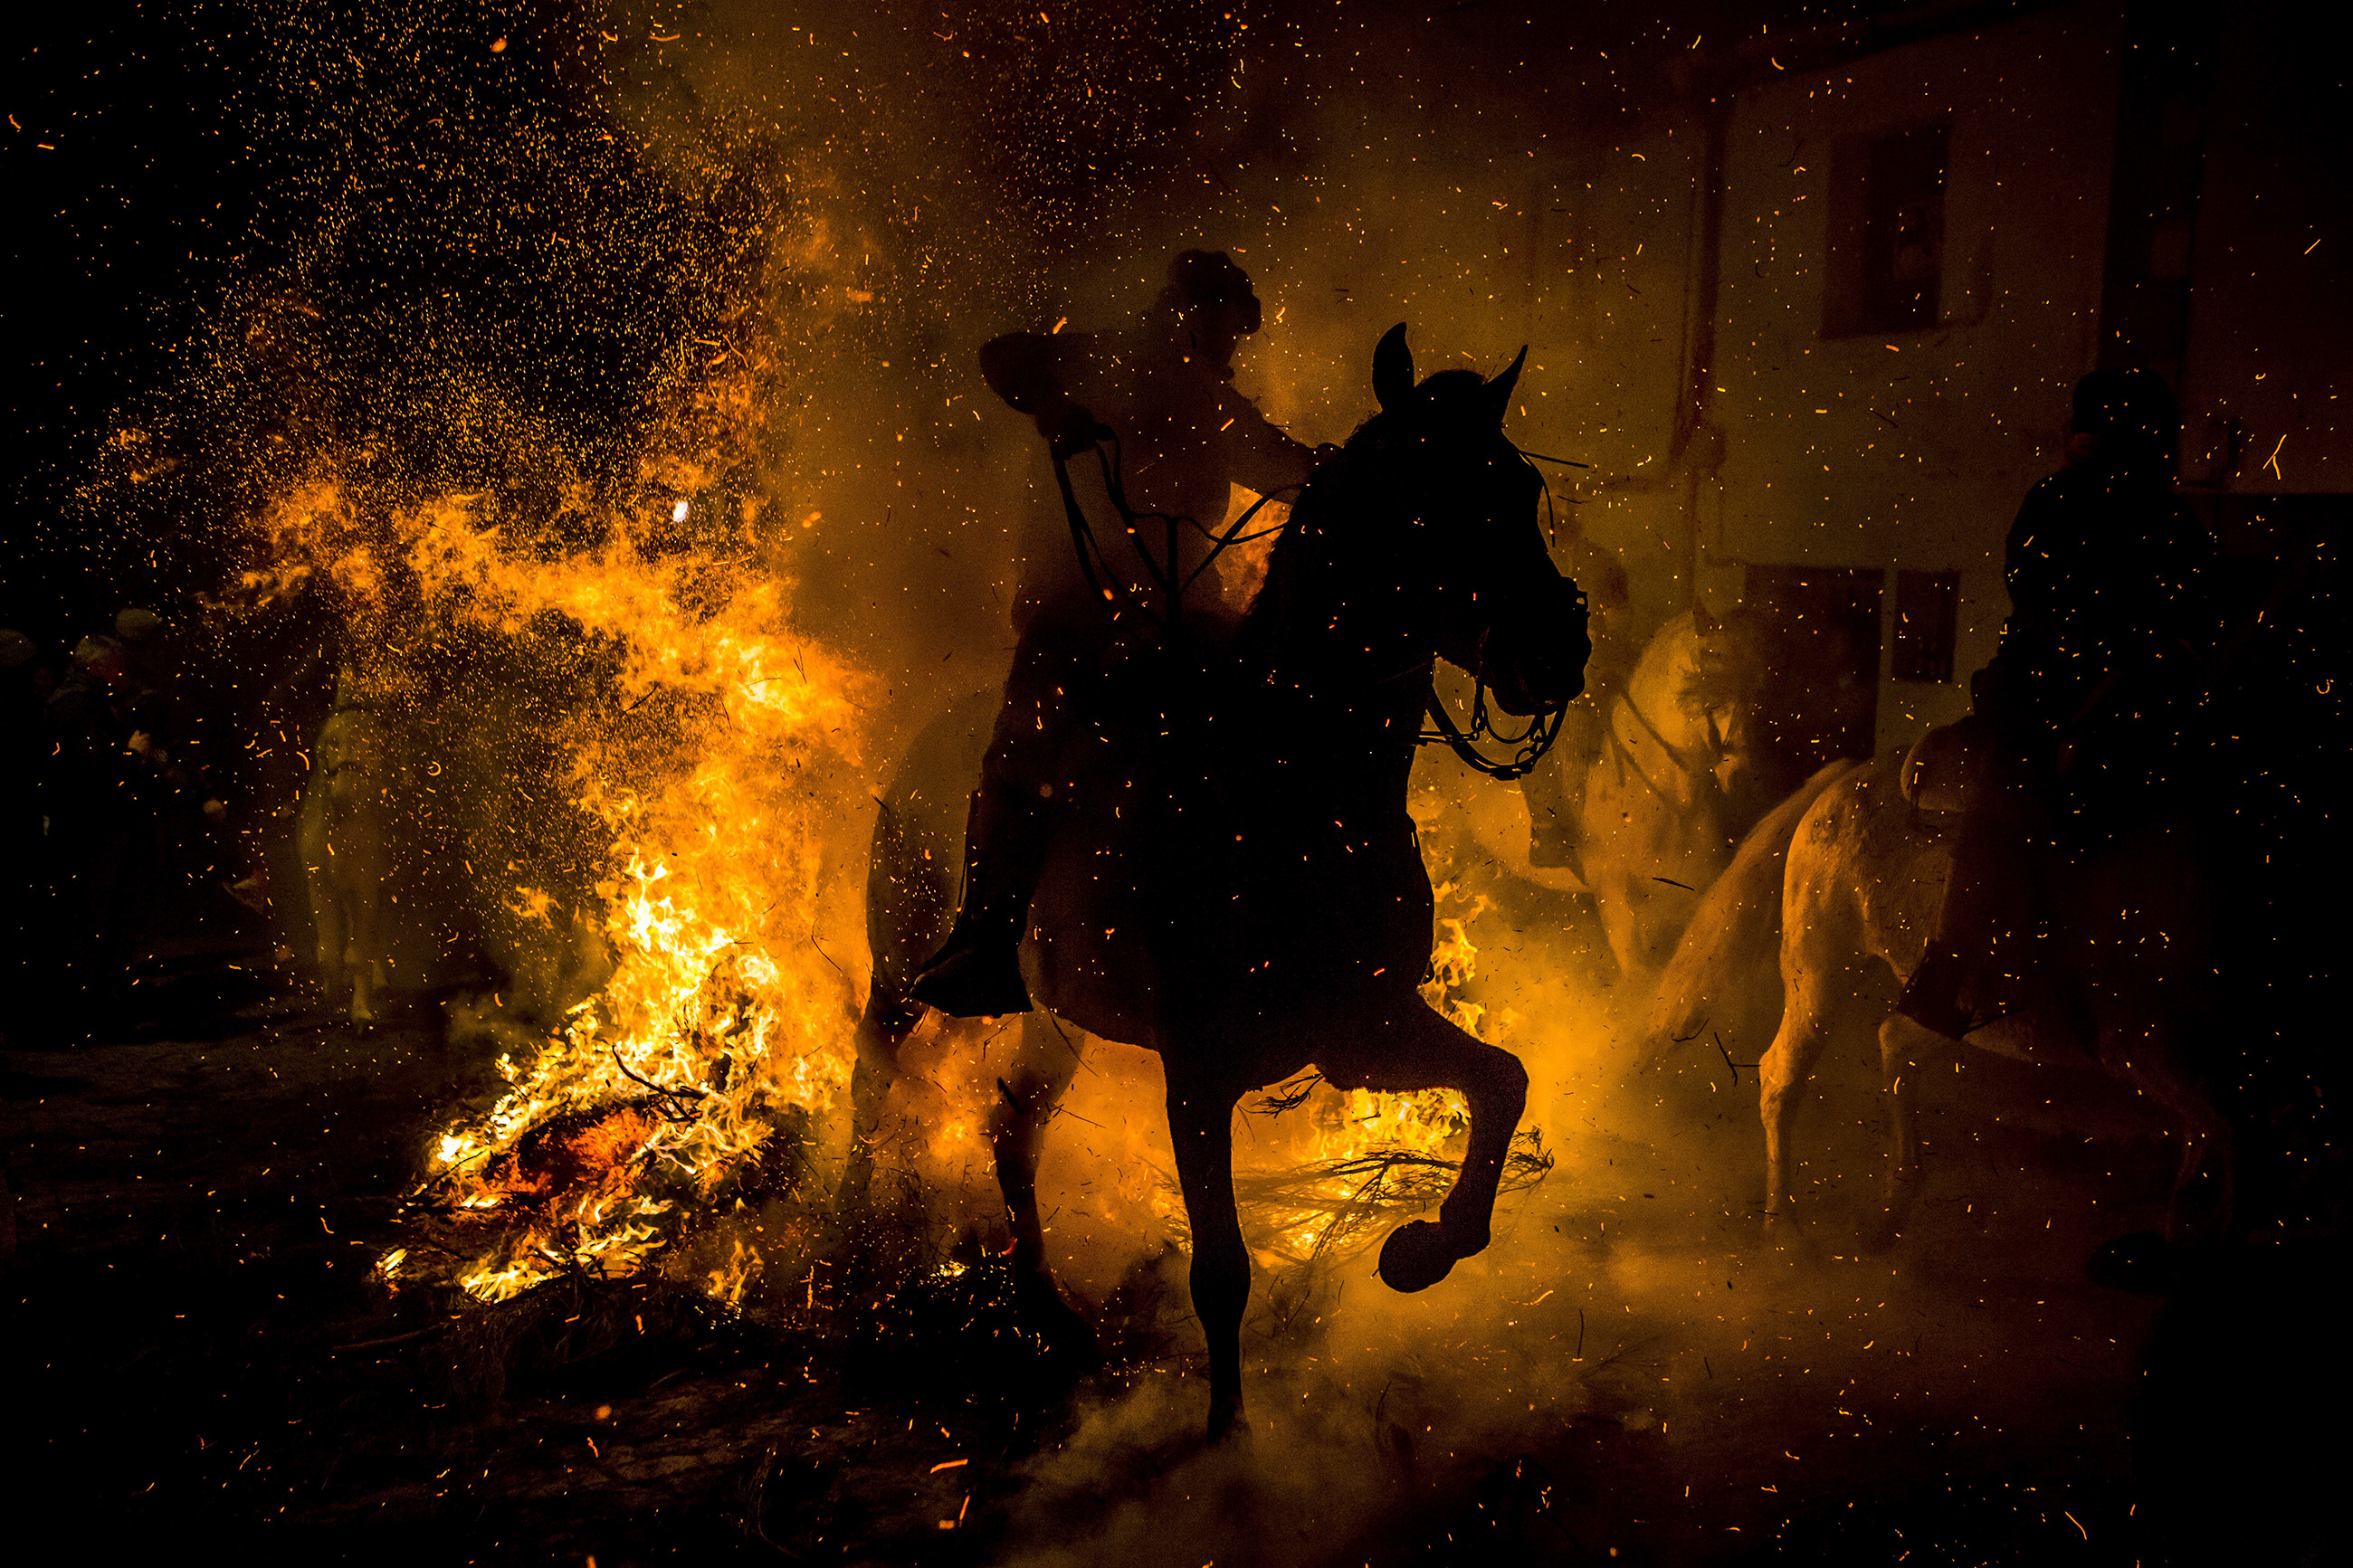 a93502058c49-Spanish_Festival_Of_Fire_and_Horses_LuisTato